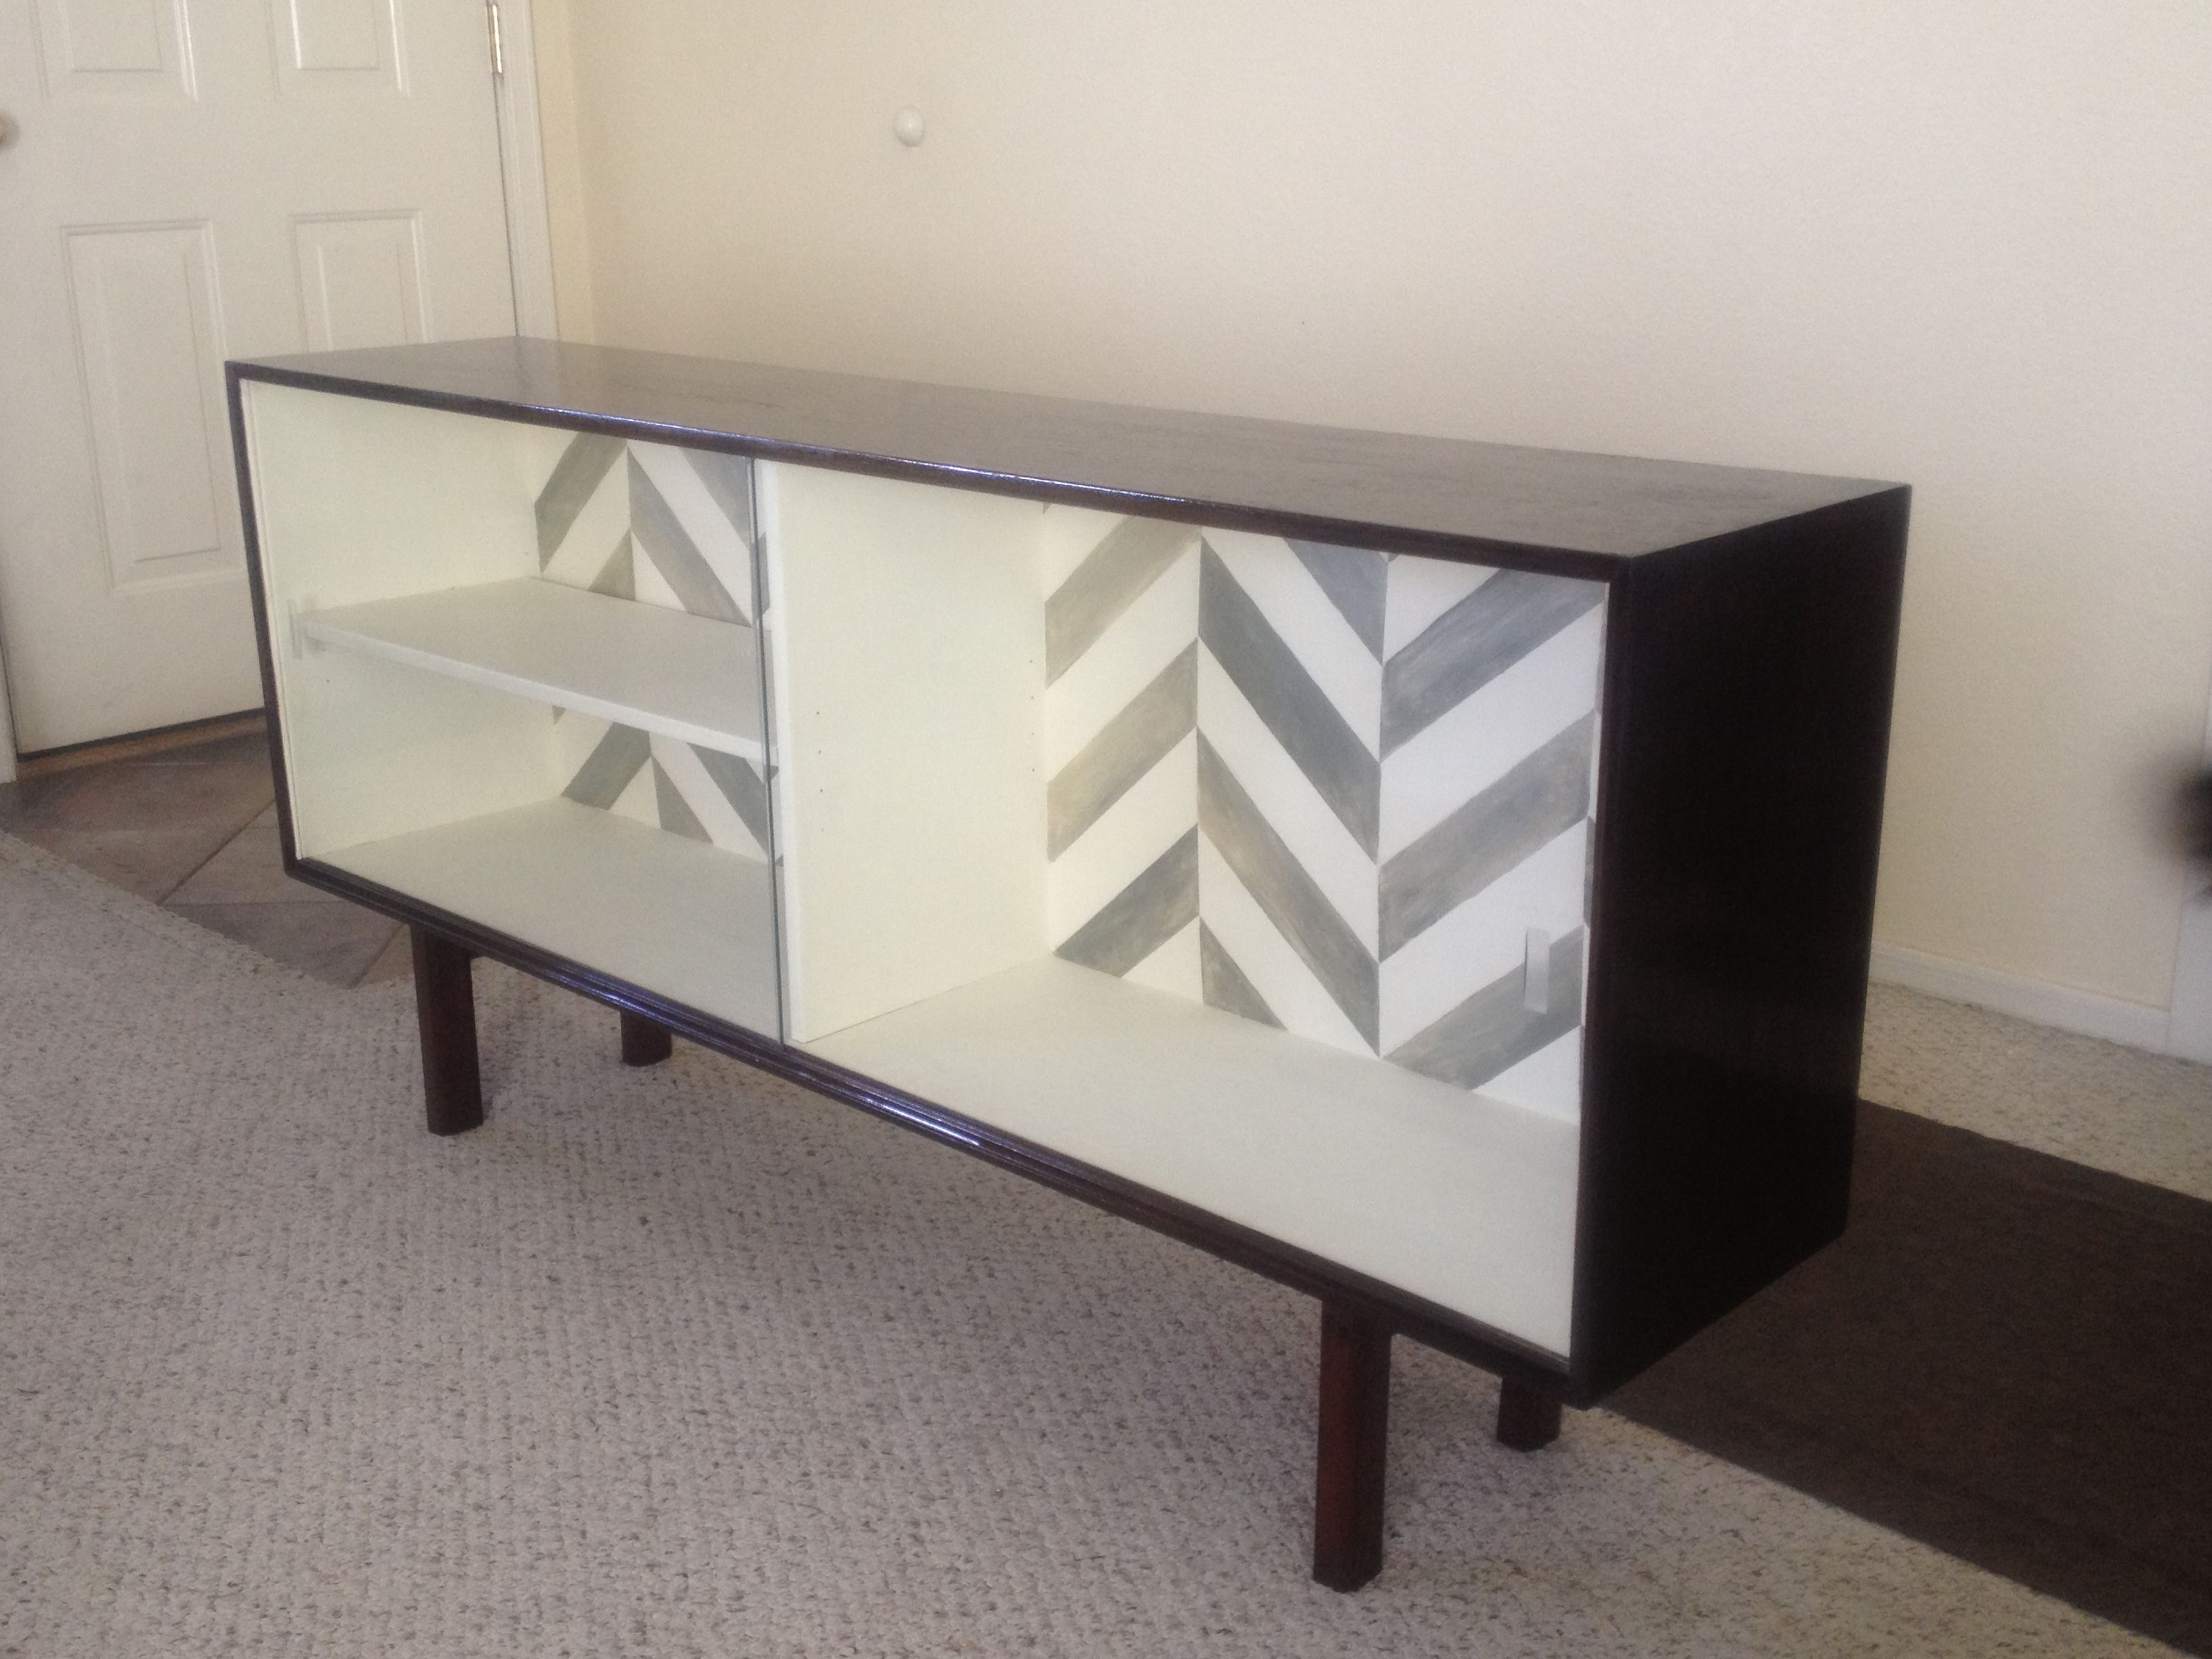 Beautifully Refurbished Mid Century Modern Furniture $350 The Back Of It  Has The Same Hand